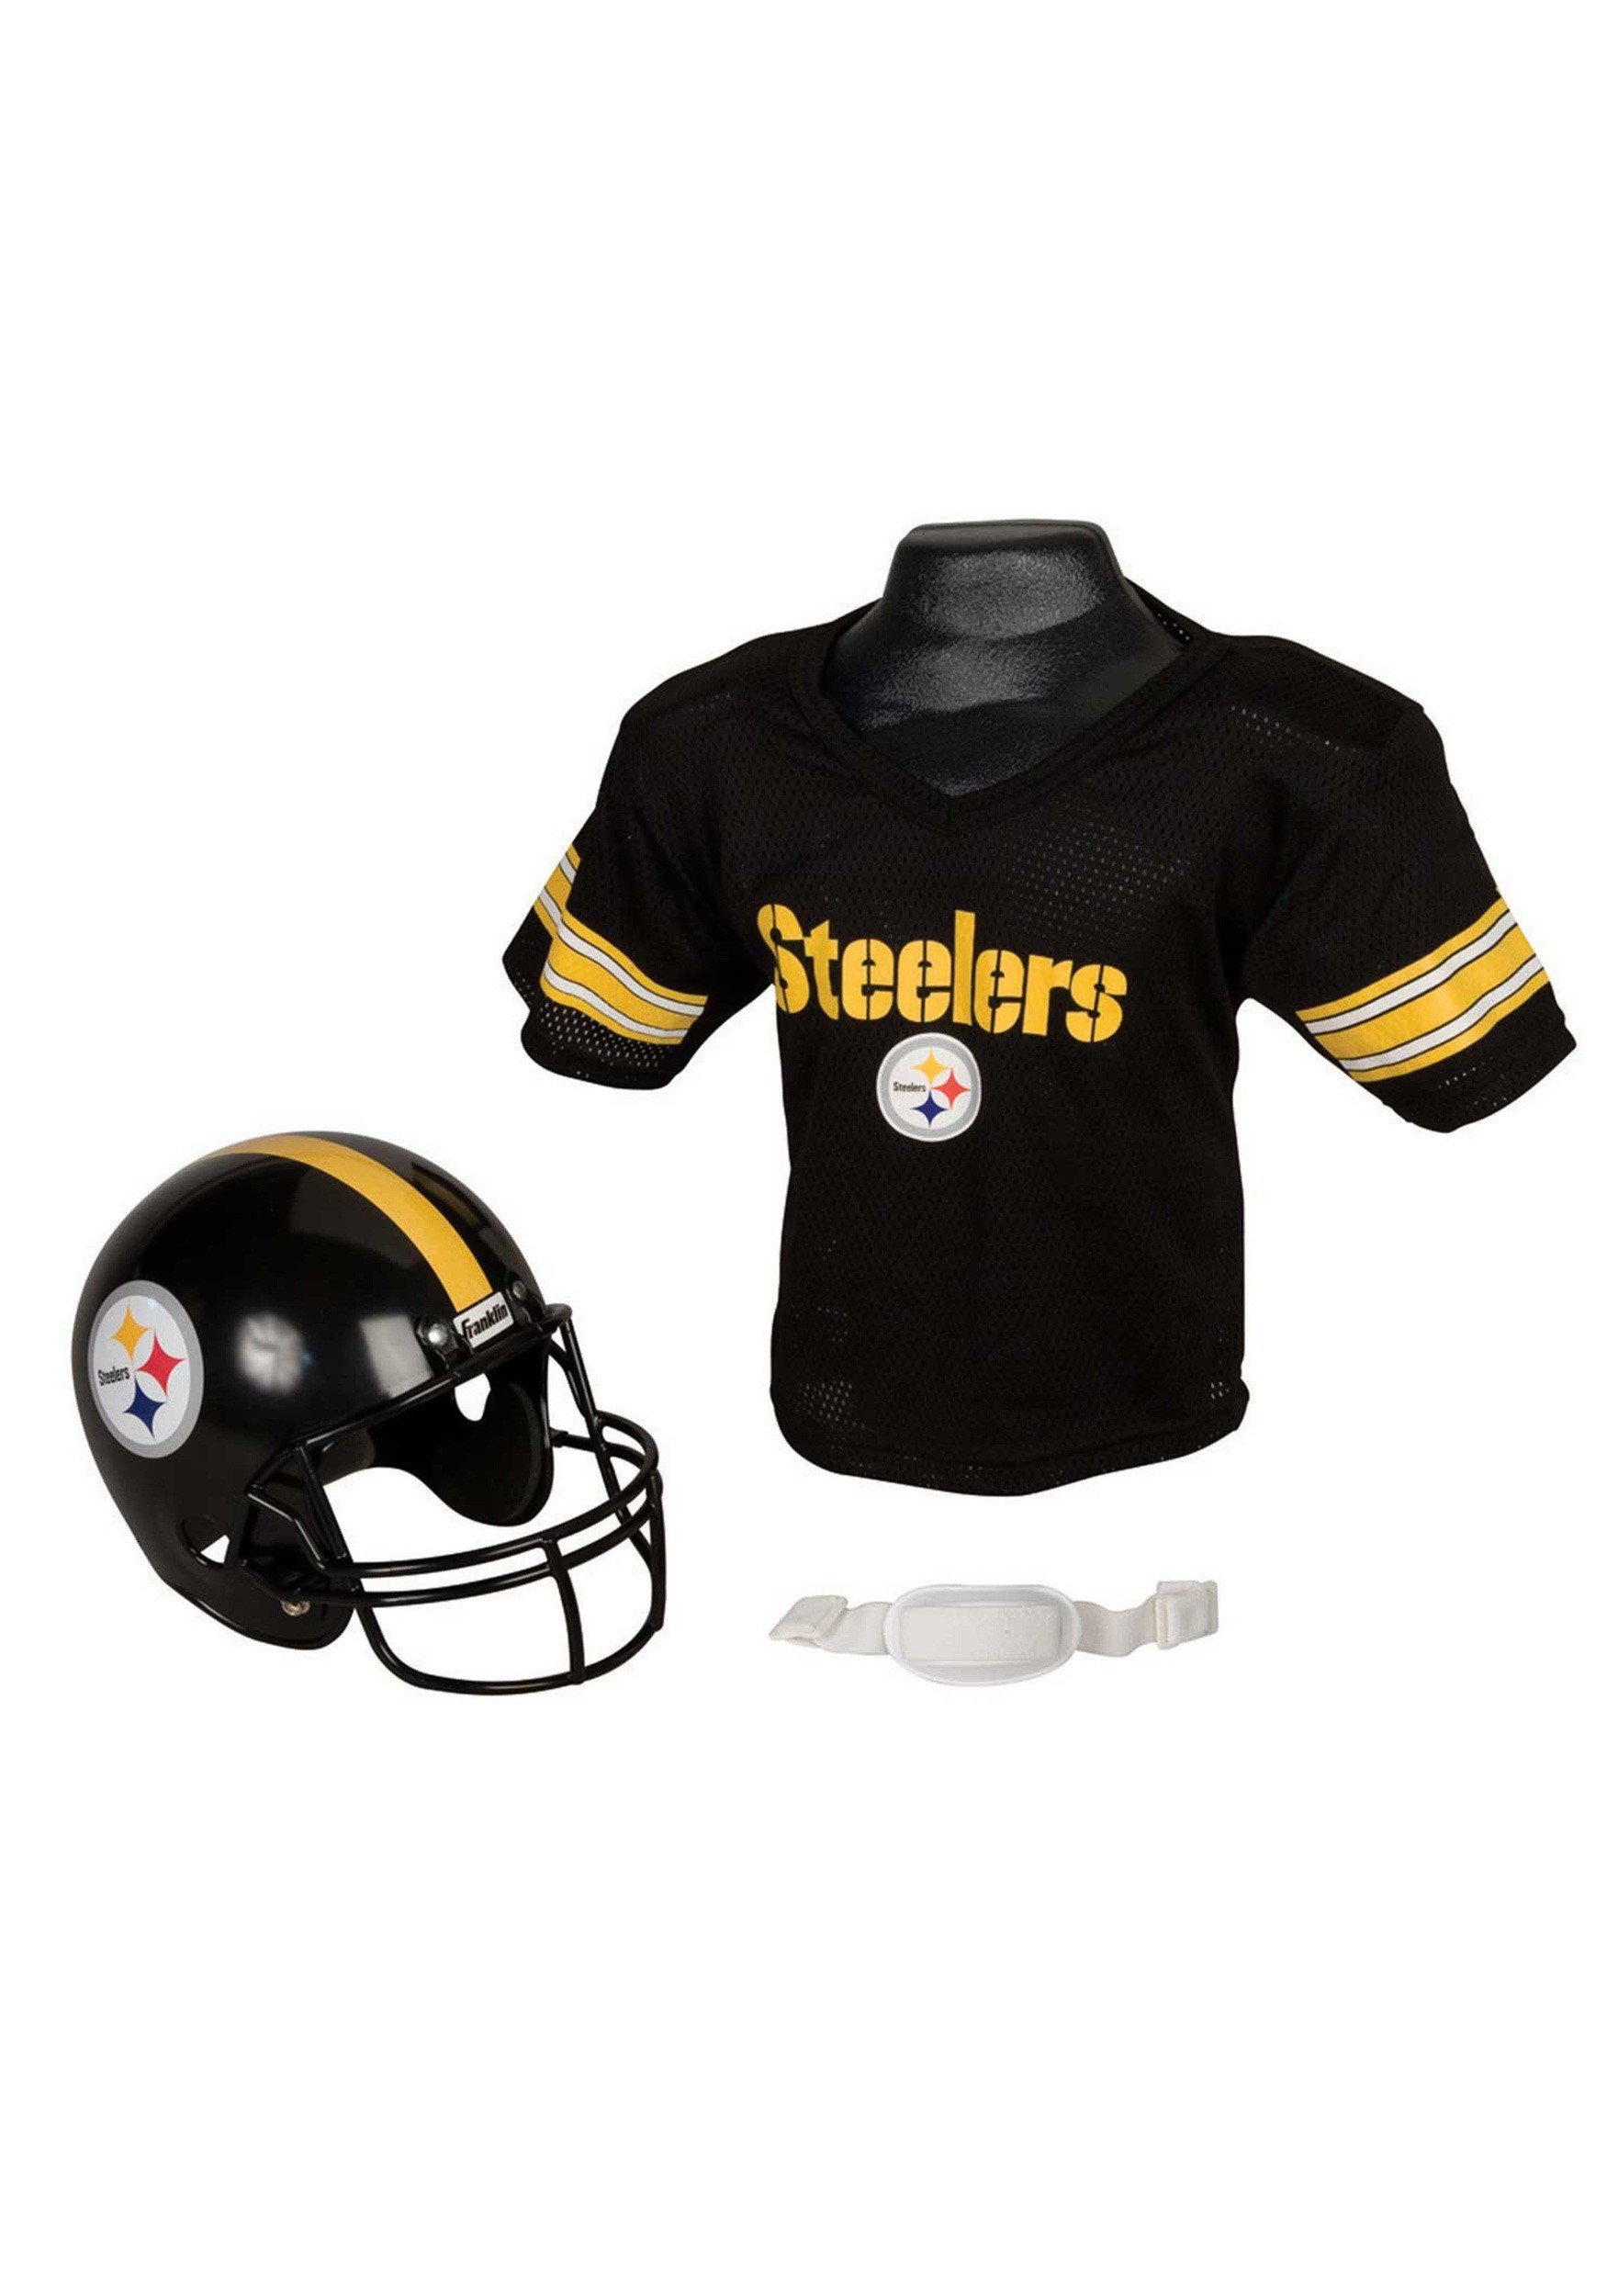 Child NFL Pittsburgh Steelers Helmet and Jersey Costume Set a1e2afcd9